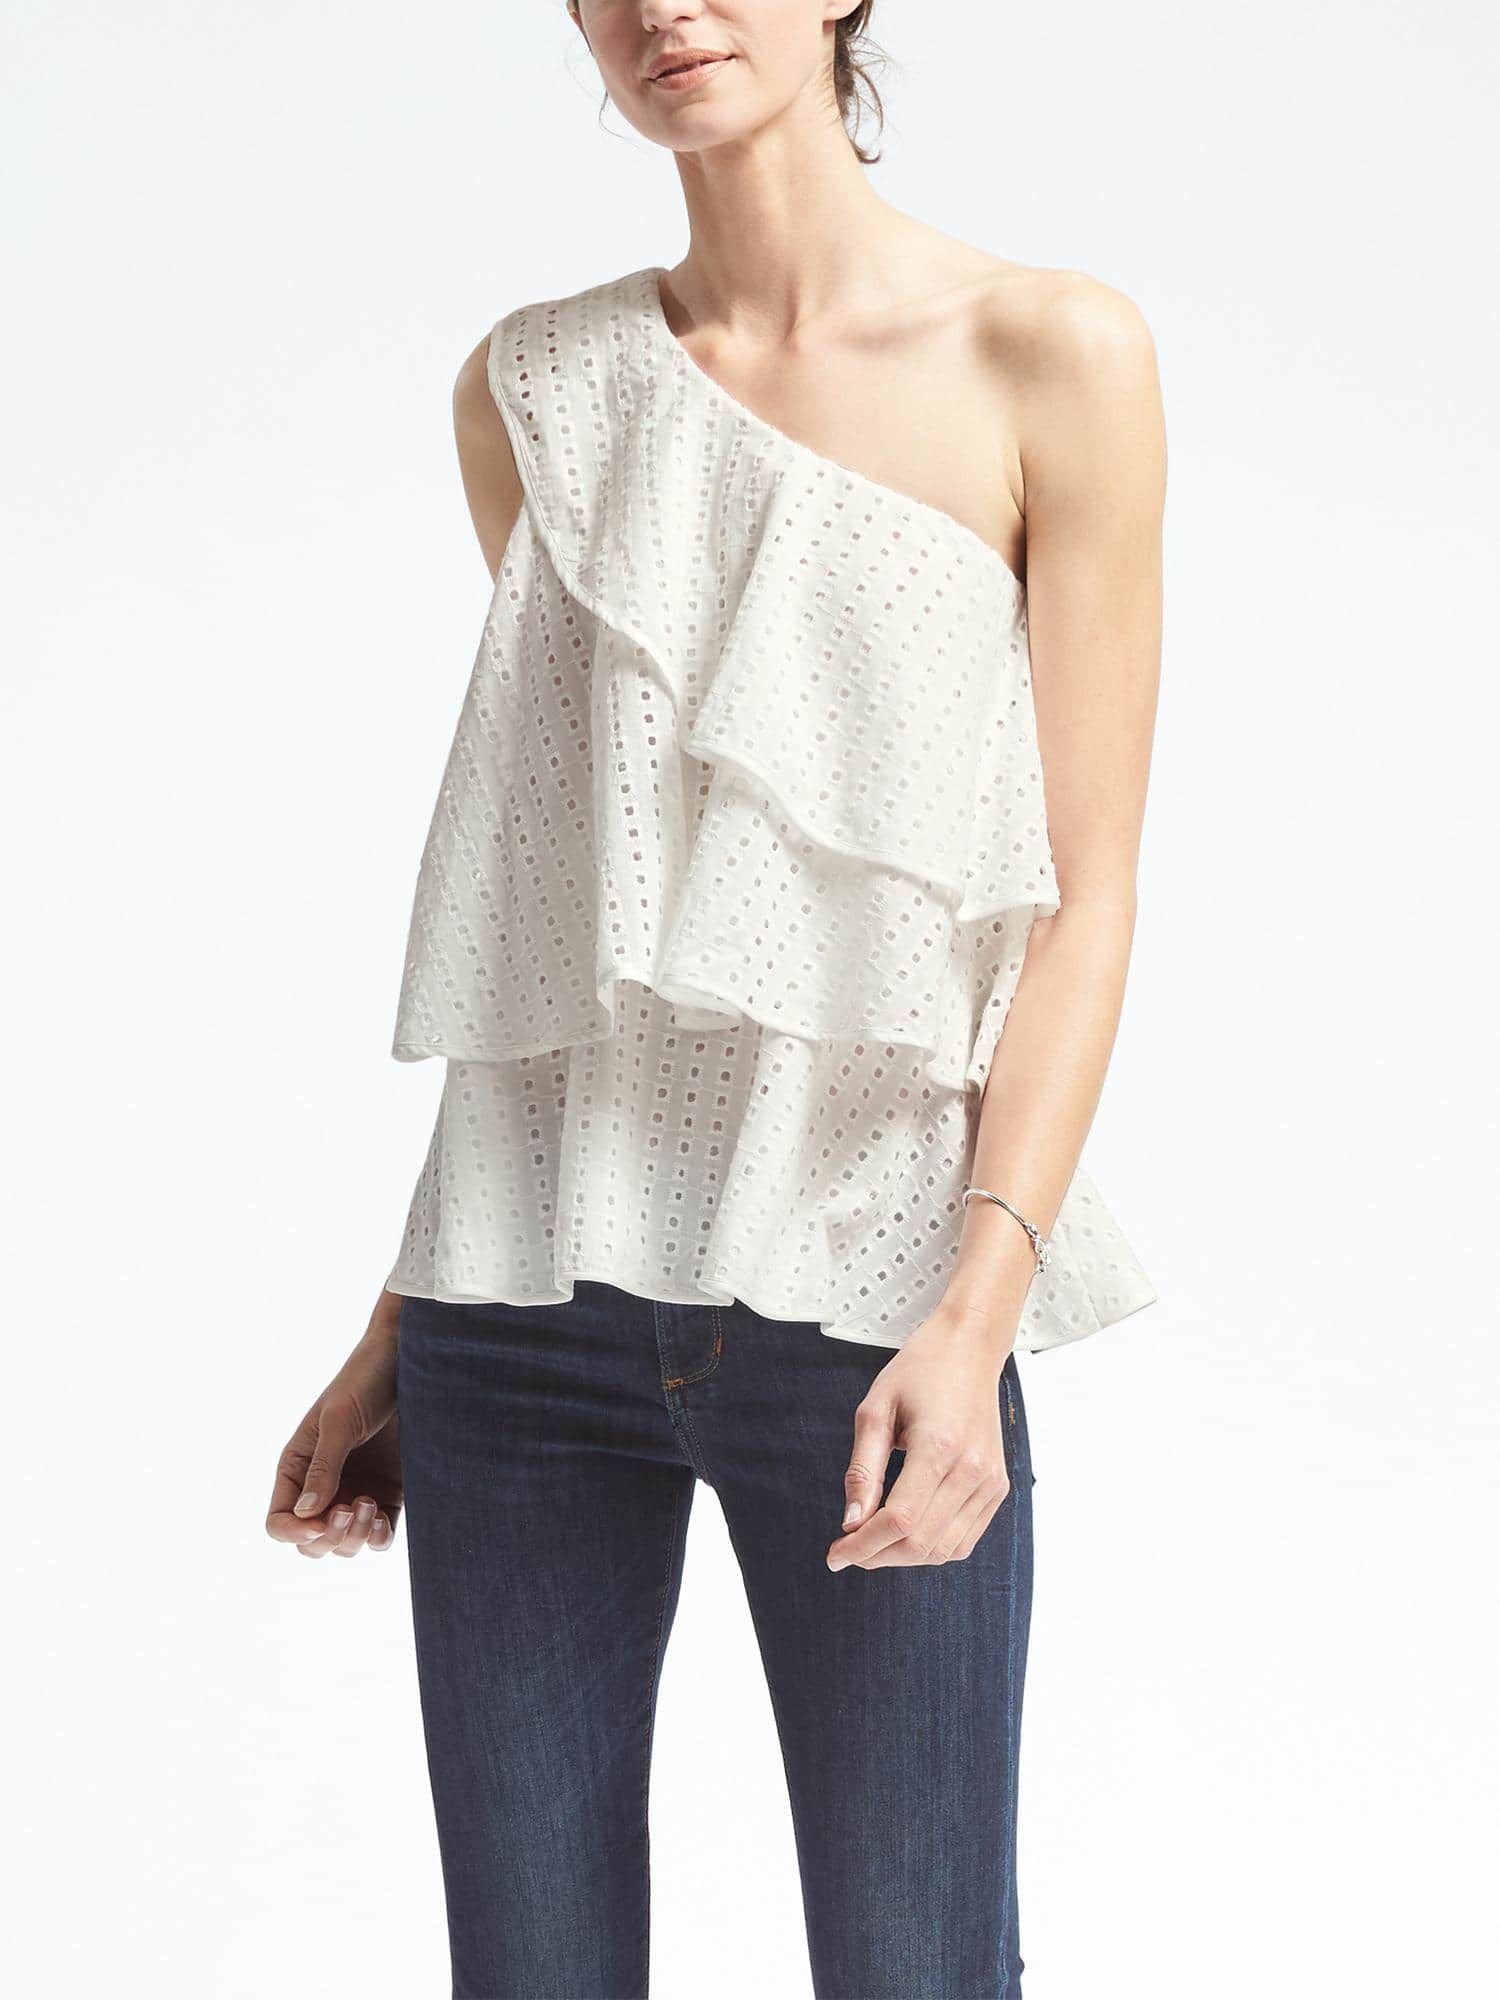 1bdeaed156d Limited Edition Tiered Eyelet One Shoulder Top   Banana Republic ...